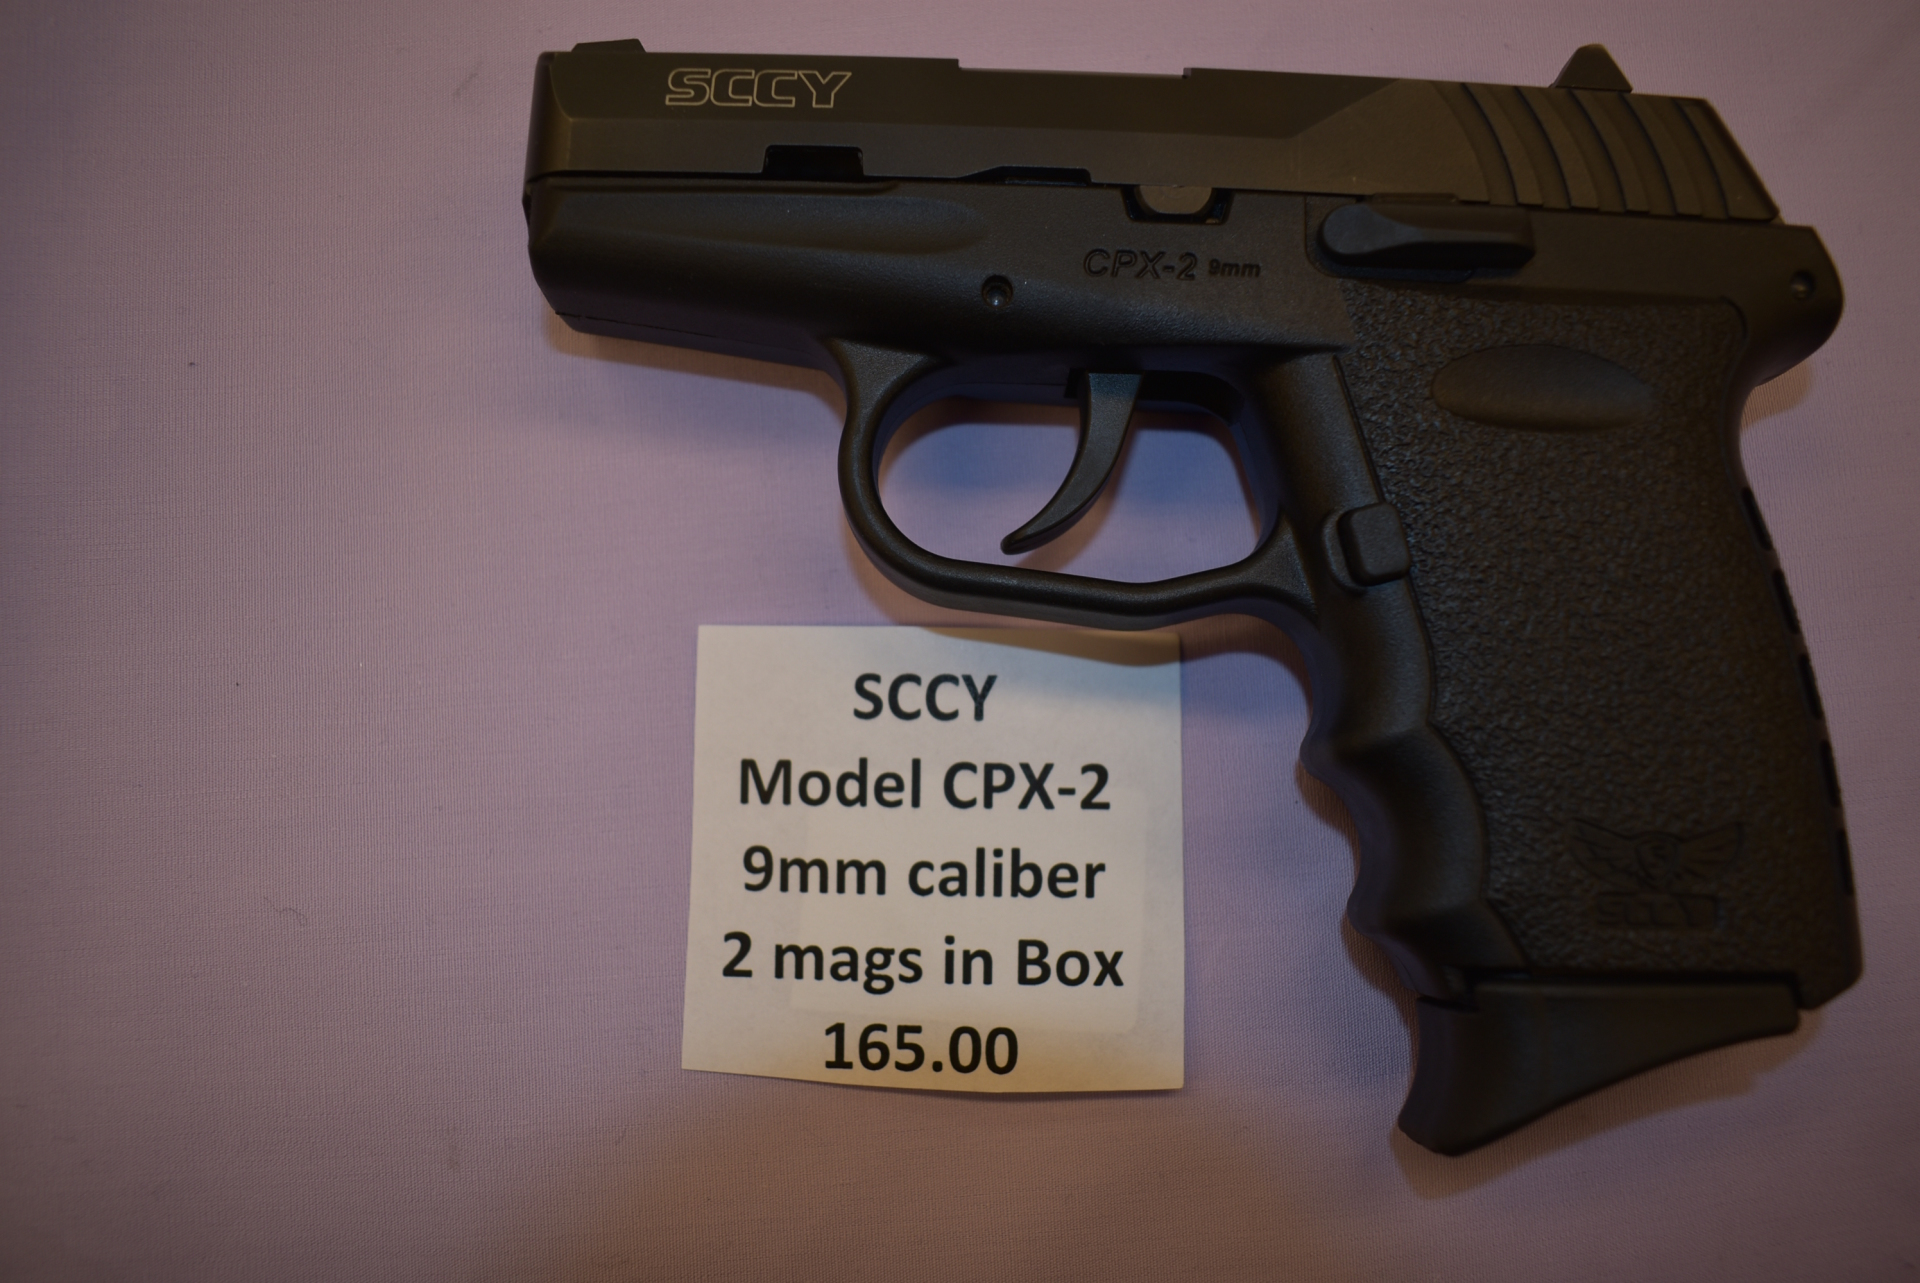 SCCY Model CPX-2